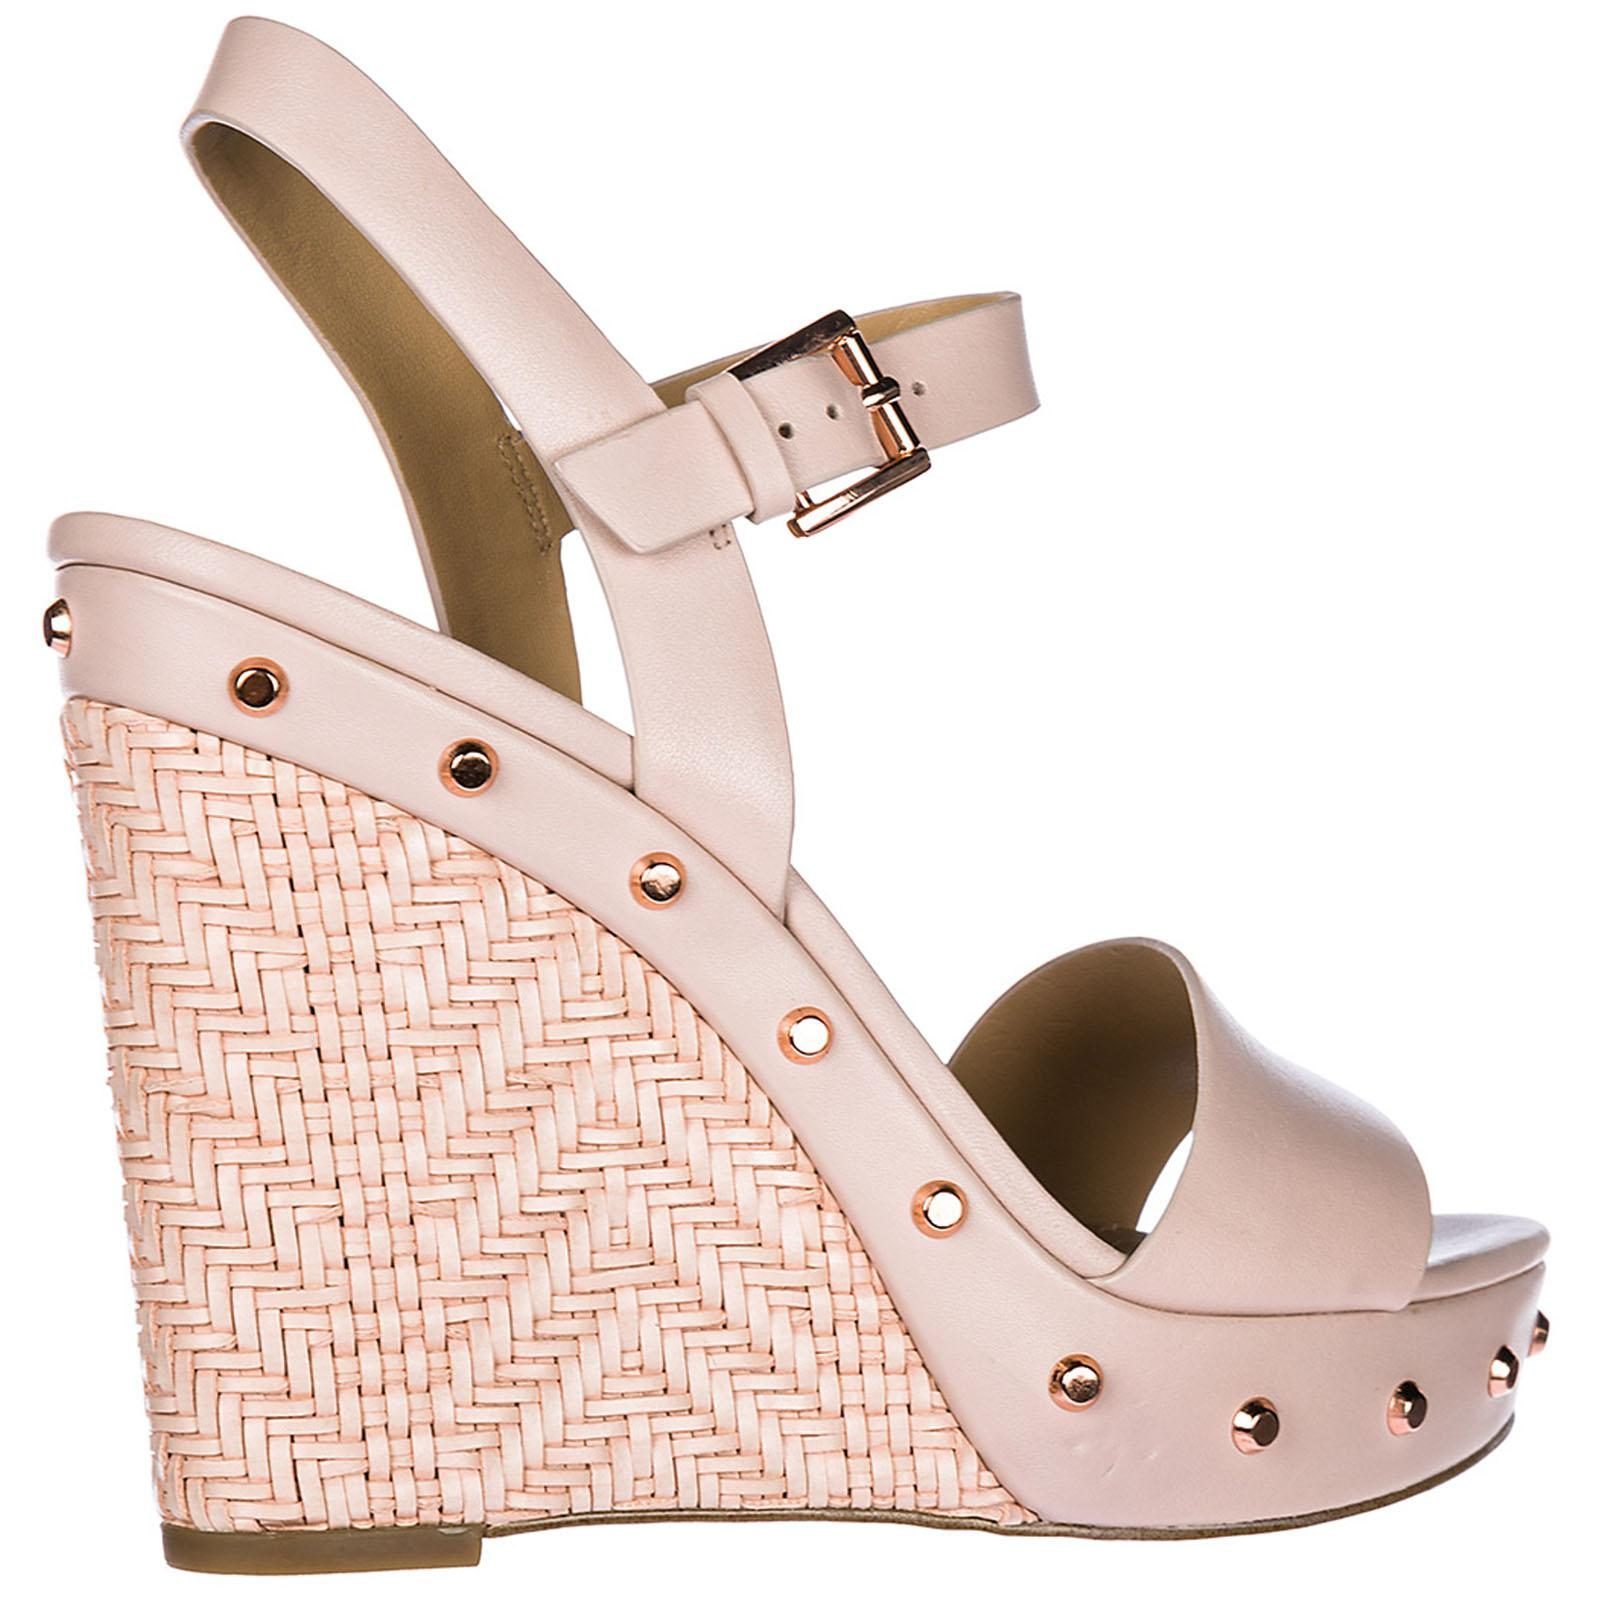 c9ff9d18486f Lyst - Michael Kors Leather Shoes Wedges Sandals Ellen in Pink